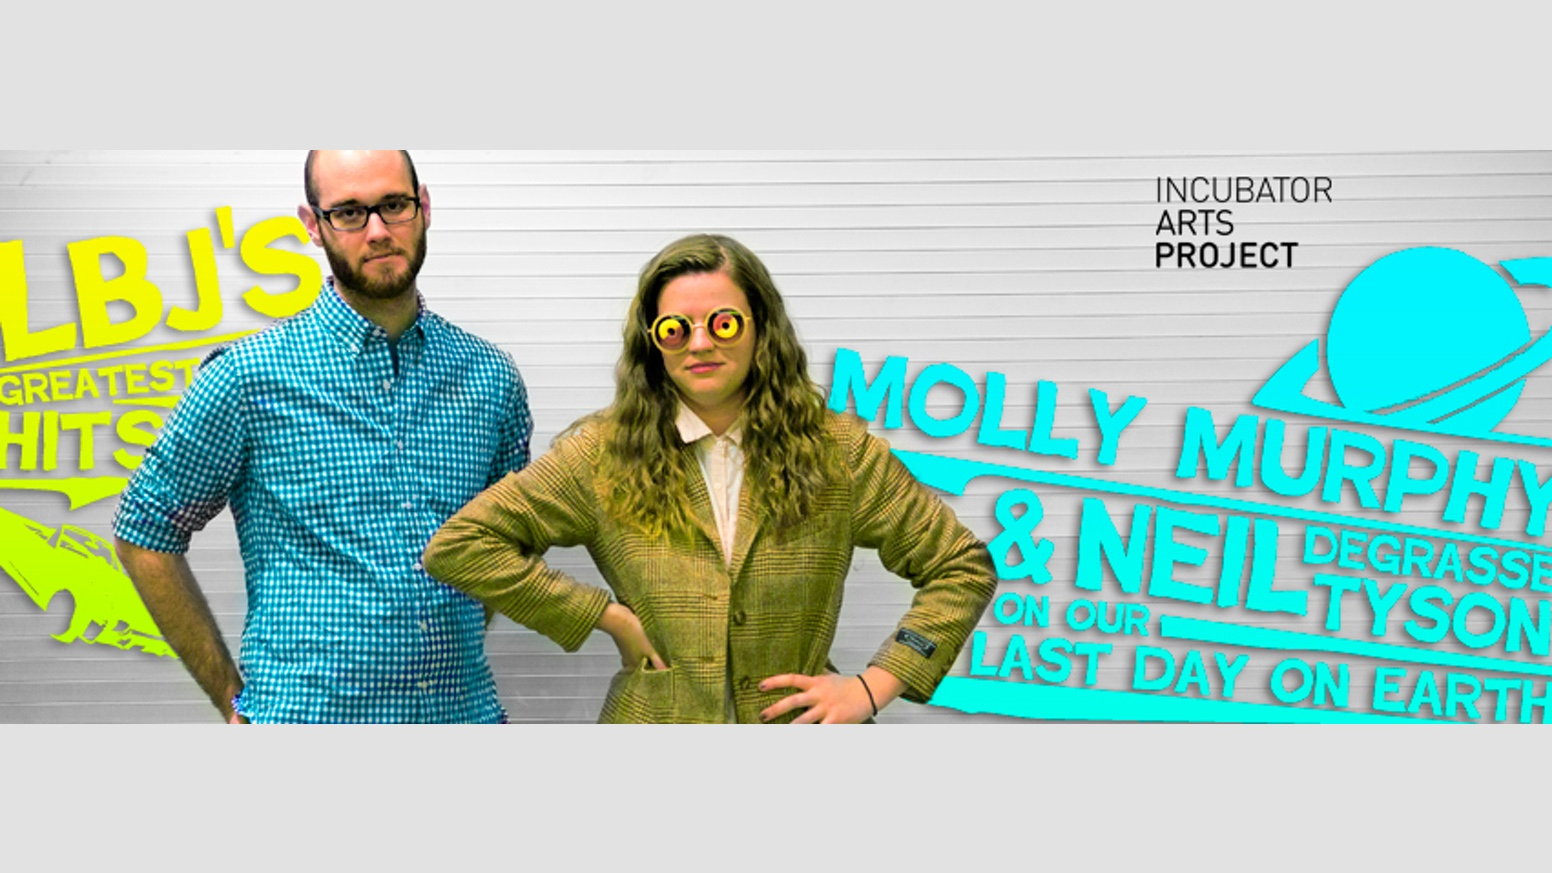 """Molly Murphy & Neil DeGrasse Tyson..."" at The Incubator Arts Project, 2014"